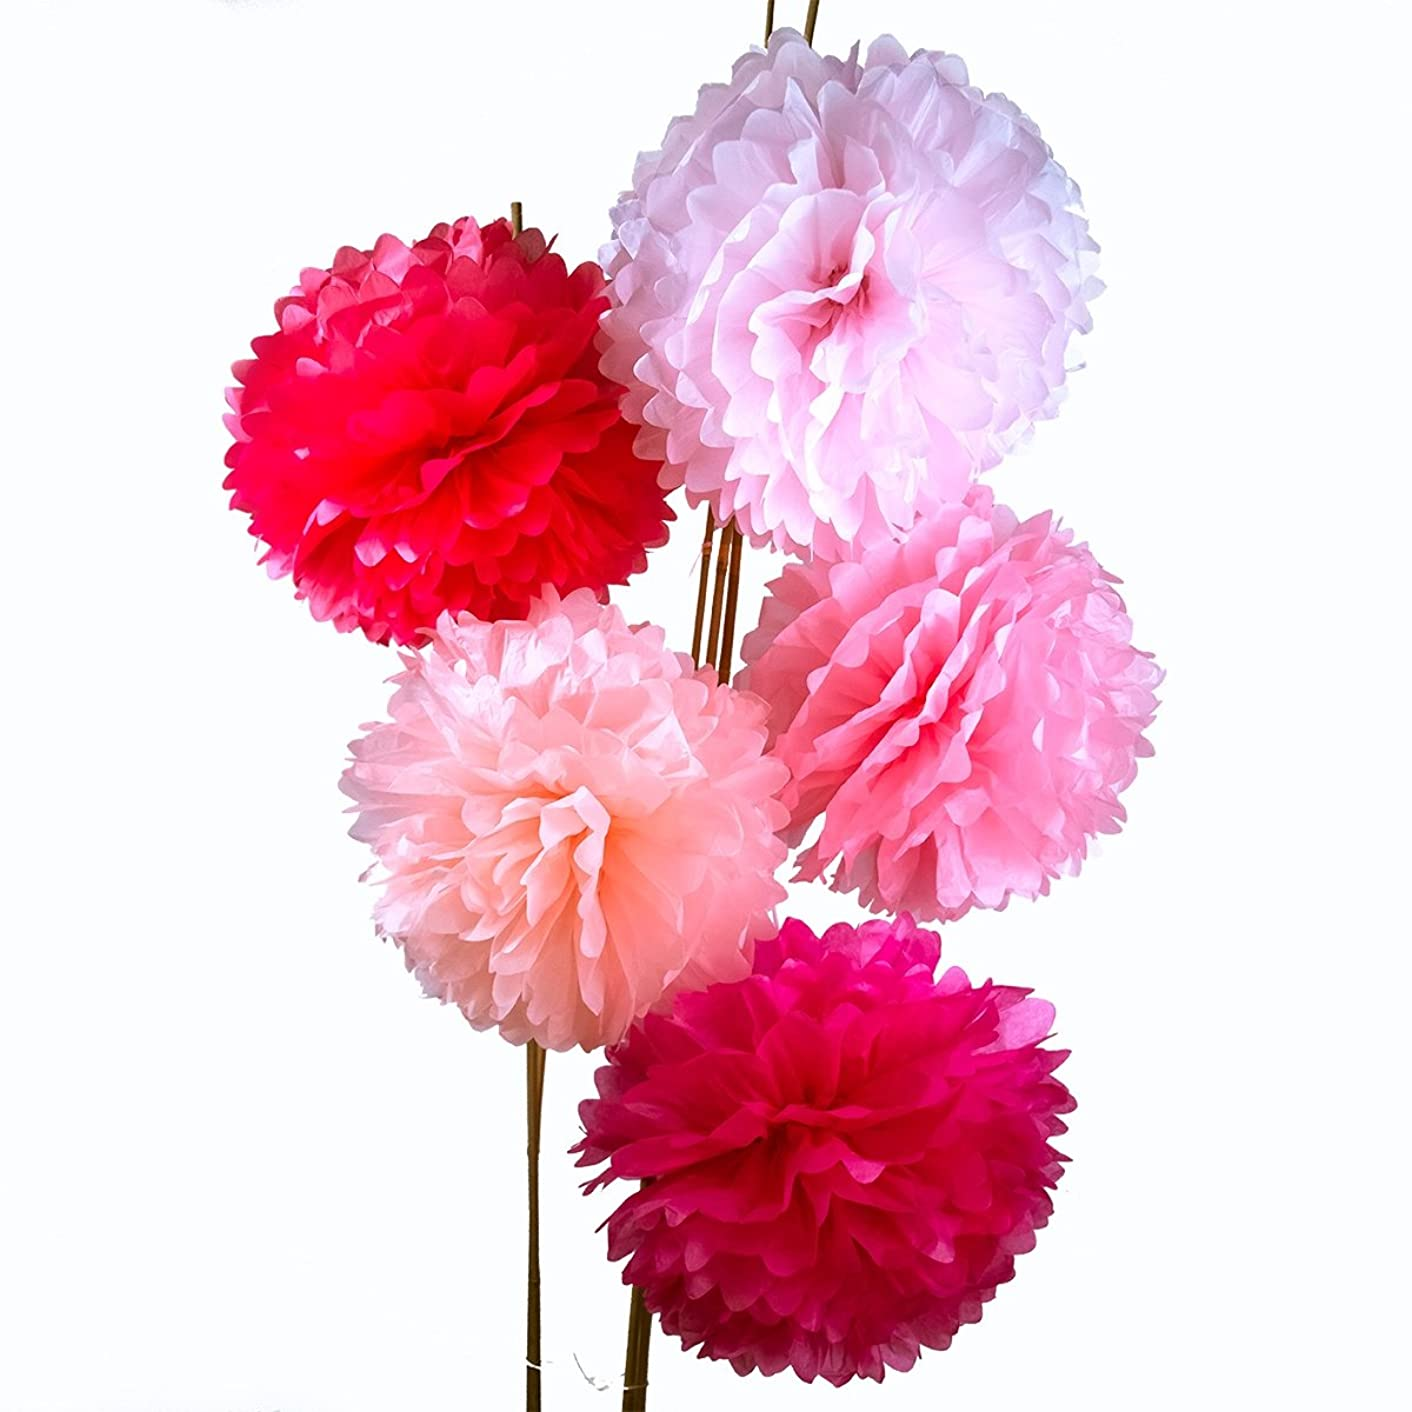 Luna Bazaar Tissue Paper Pom Poms (10-Inch, Multicolor Pinks, Set of 5) - for Baby Showers, Nurseries, and Parties - Hanging Paper Flower Decorations